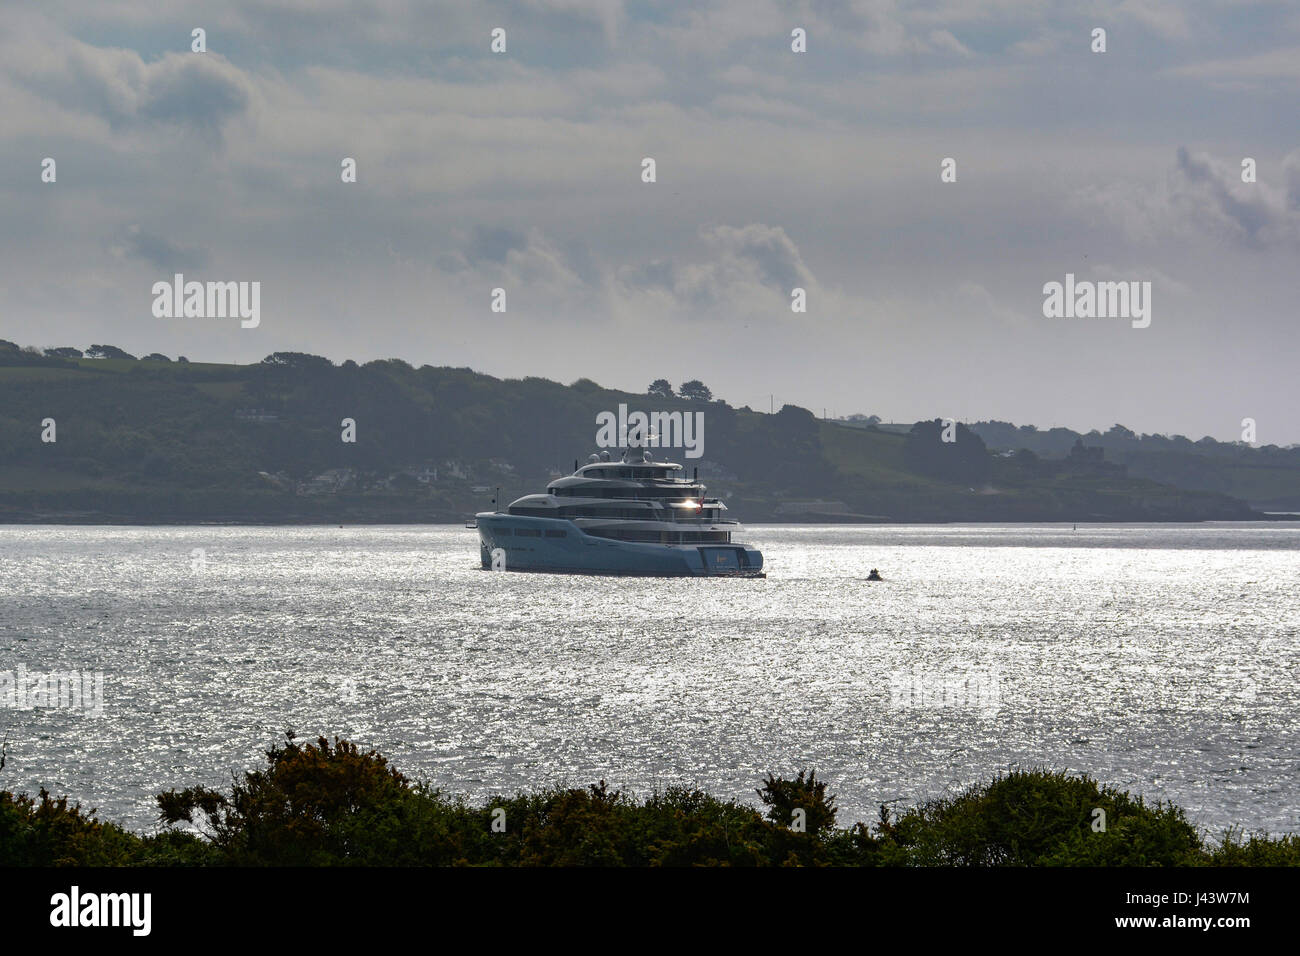 Flushing, Cornwall, UK. 9th May 2017. The super yacht Aviva is moored off Falmouth today. Owned by the billionaire Stock Photo